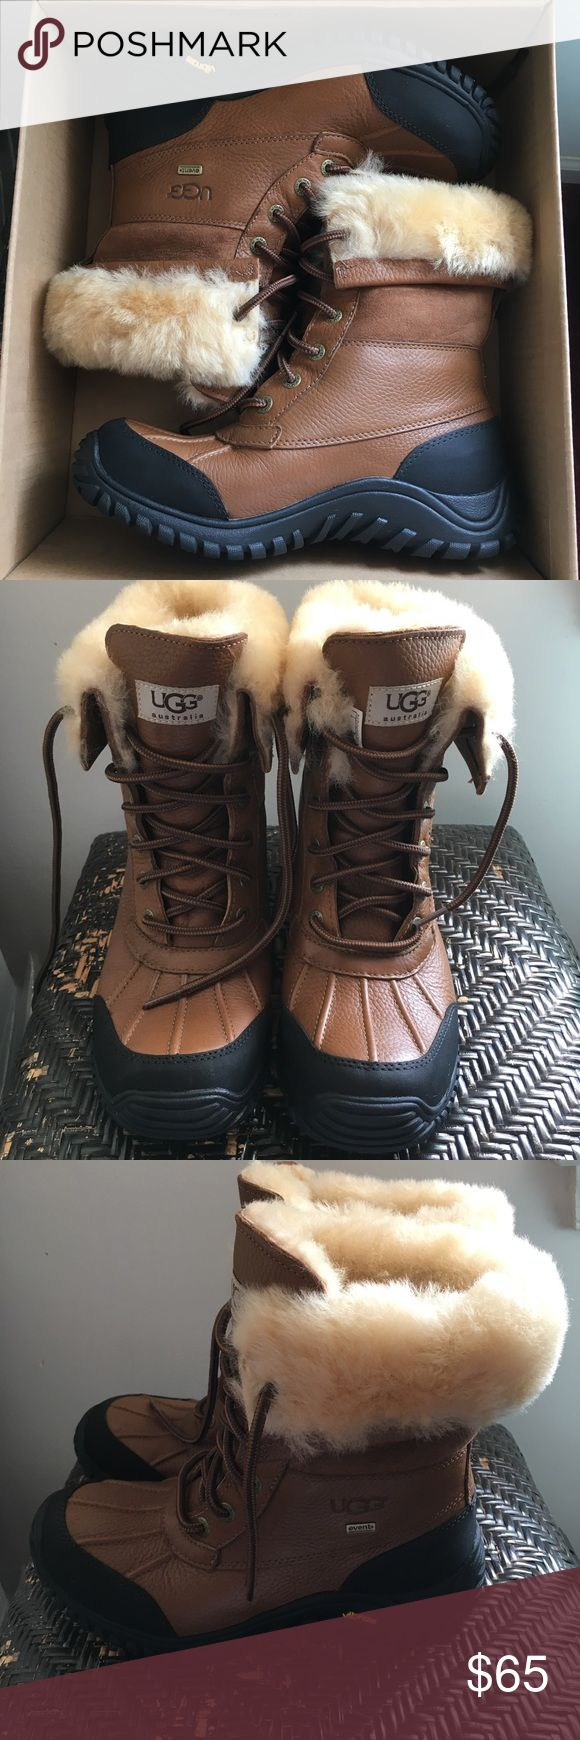 UGG Adirondack book Ugg snow boots in almost perfect condition UGG Shoes Winter & Rain Boots